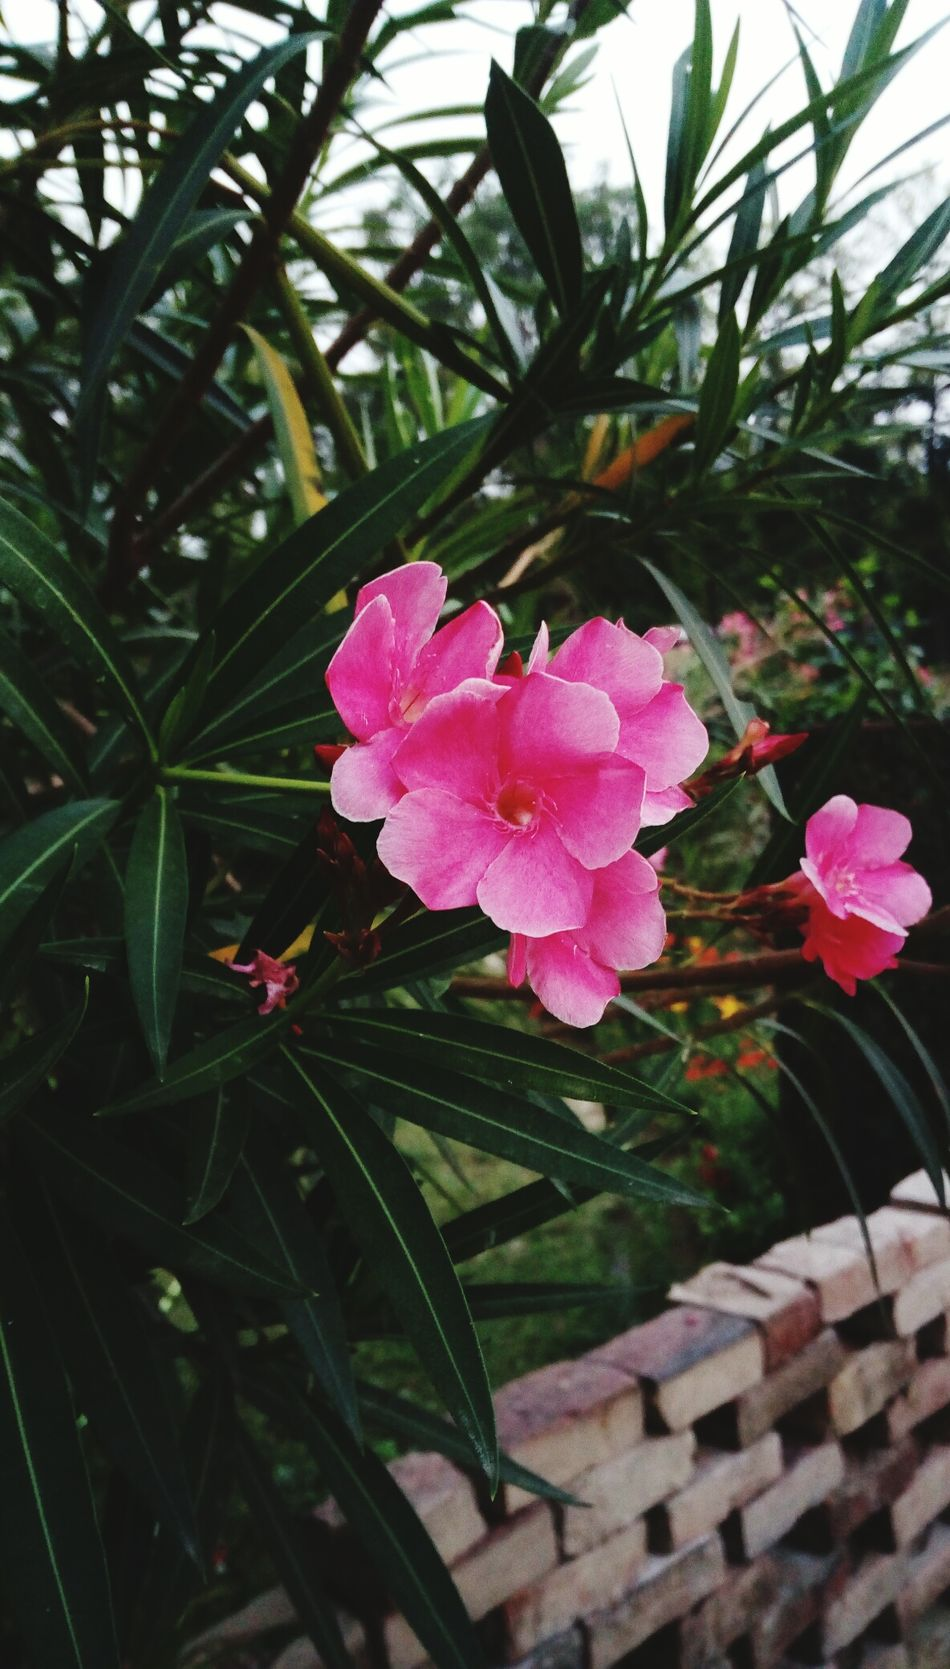 Growth Beauty In Nature Pink Color Leaf Petal Freshness Outdoors Flower Head Close-up Flower Plant Nature EyeEmNewHere Resist The Secret Spaces Long Goodbye EyeEm Diversity